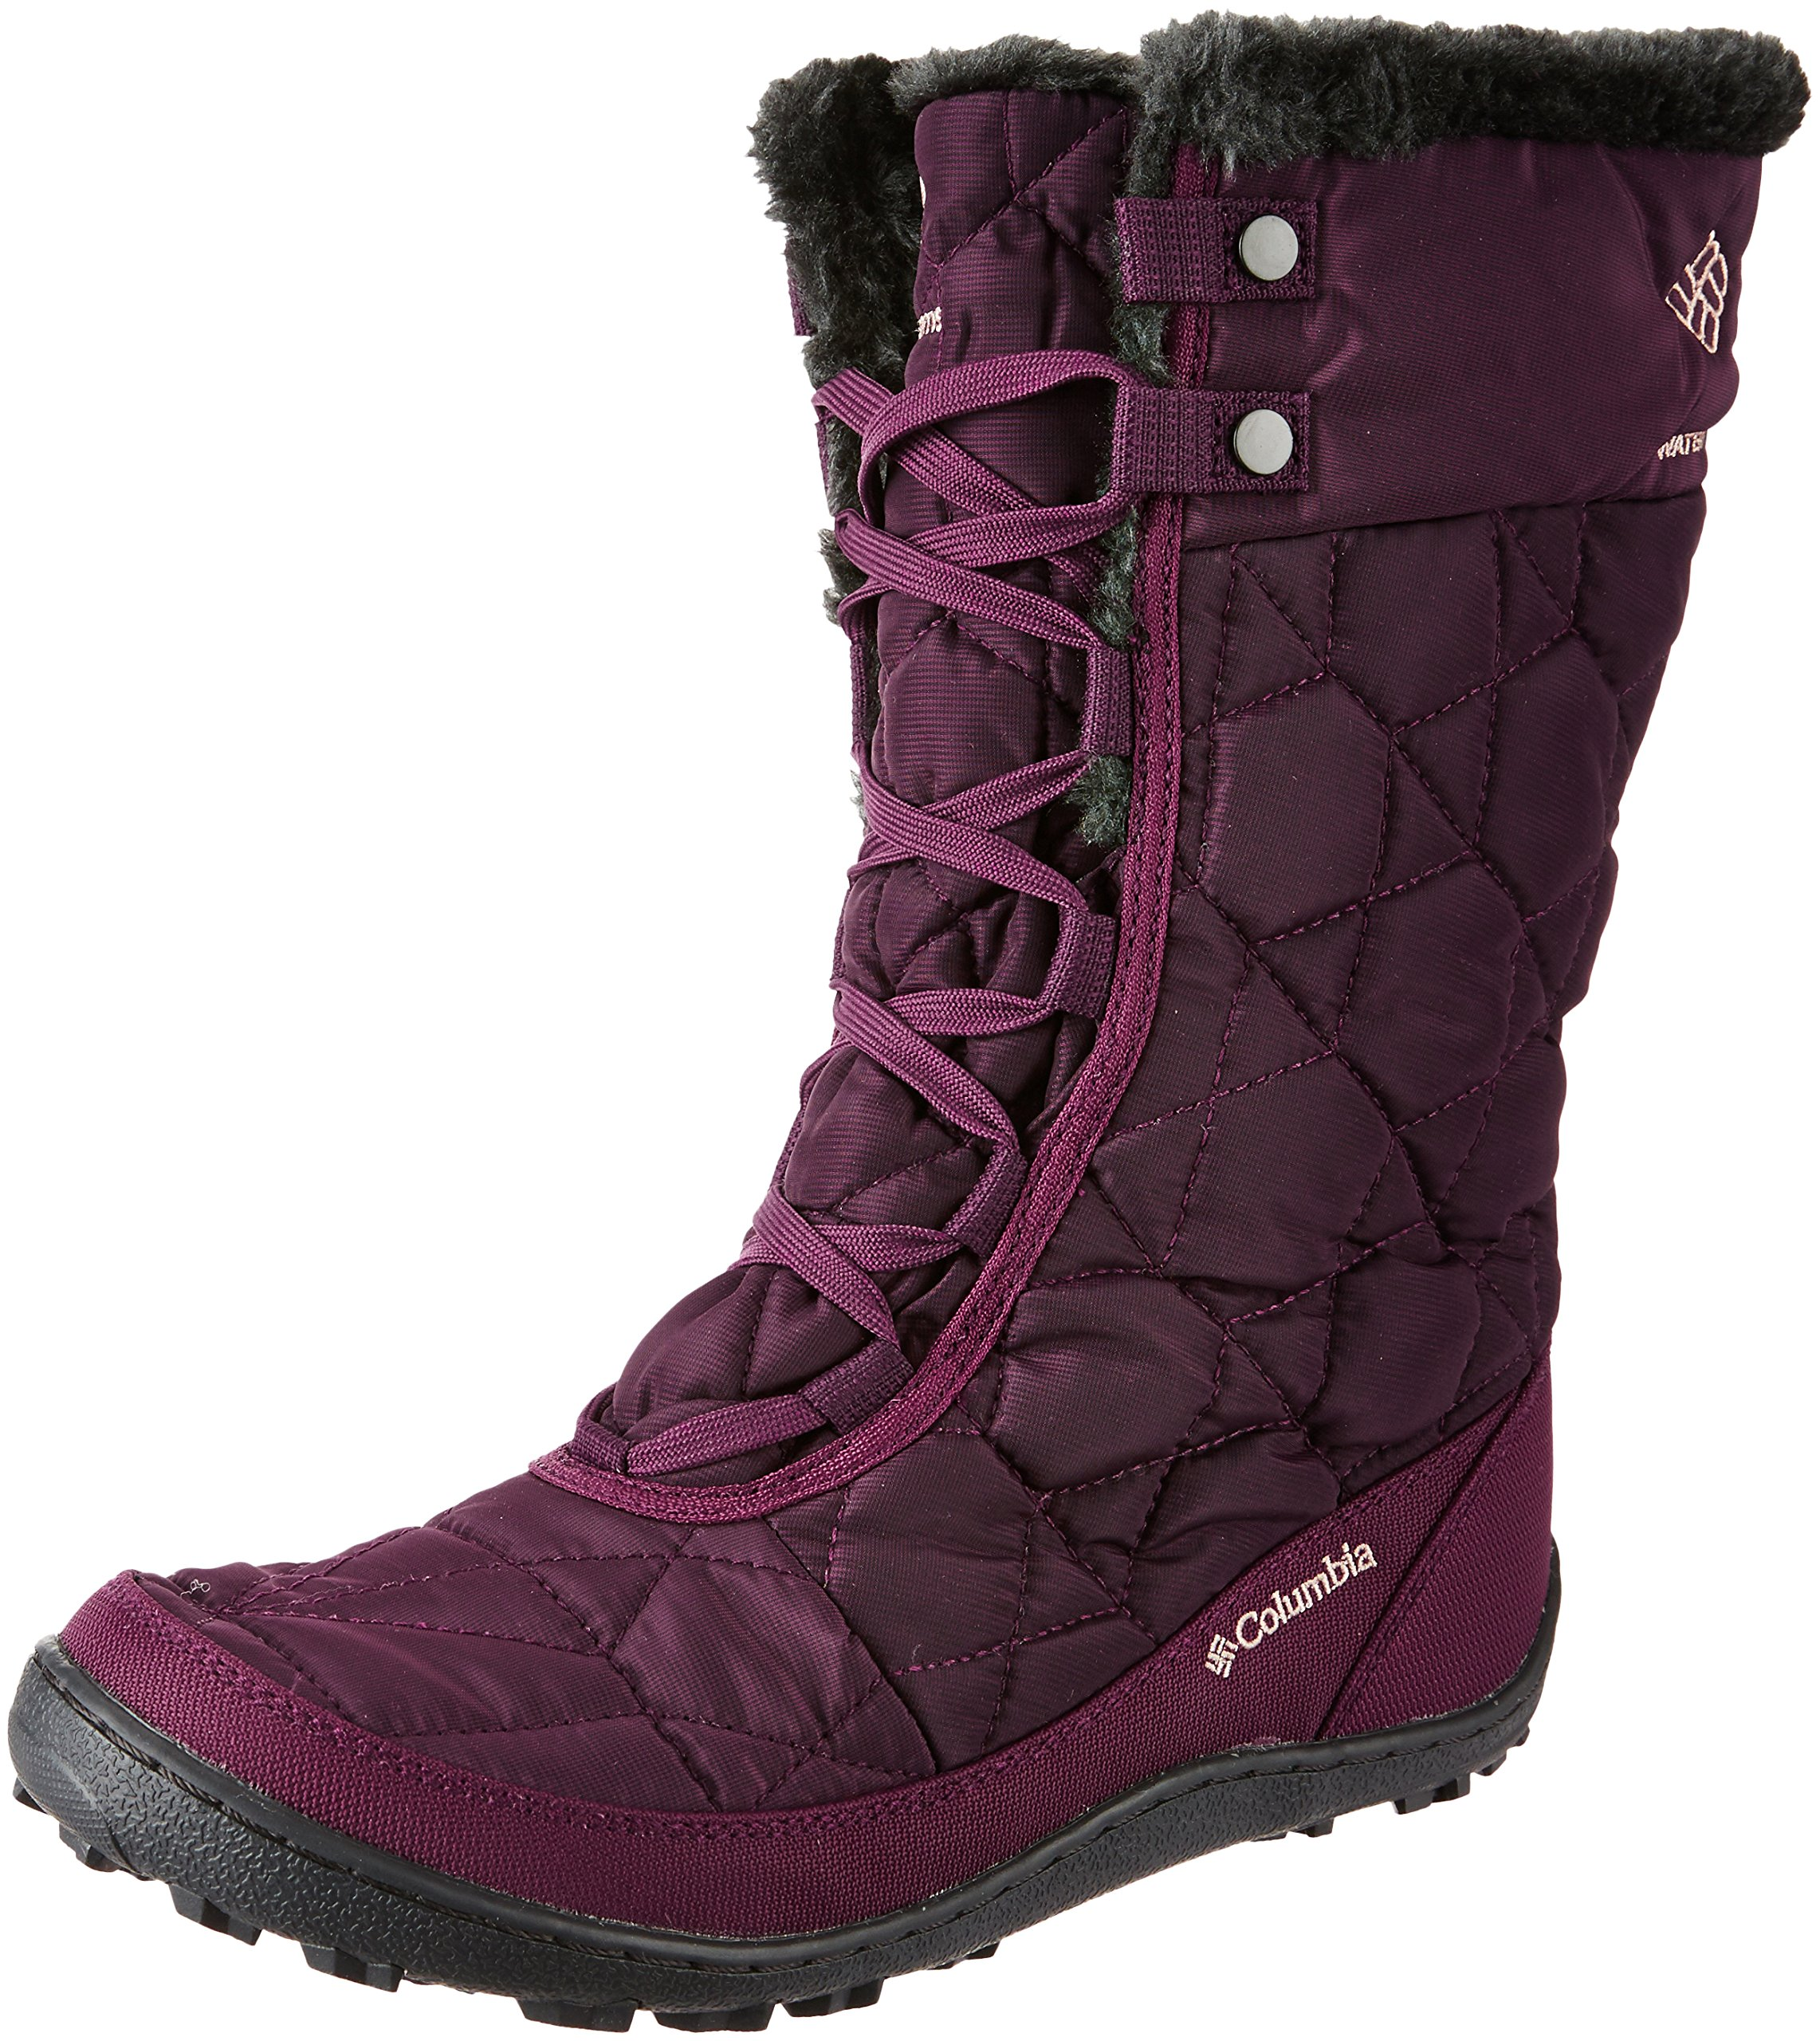 Columbia Women's Minx Mid II Omni-Heat Snow Boot, Purple Dahlia, Ancient Fossil, 5 B US